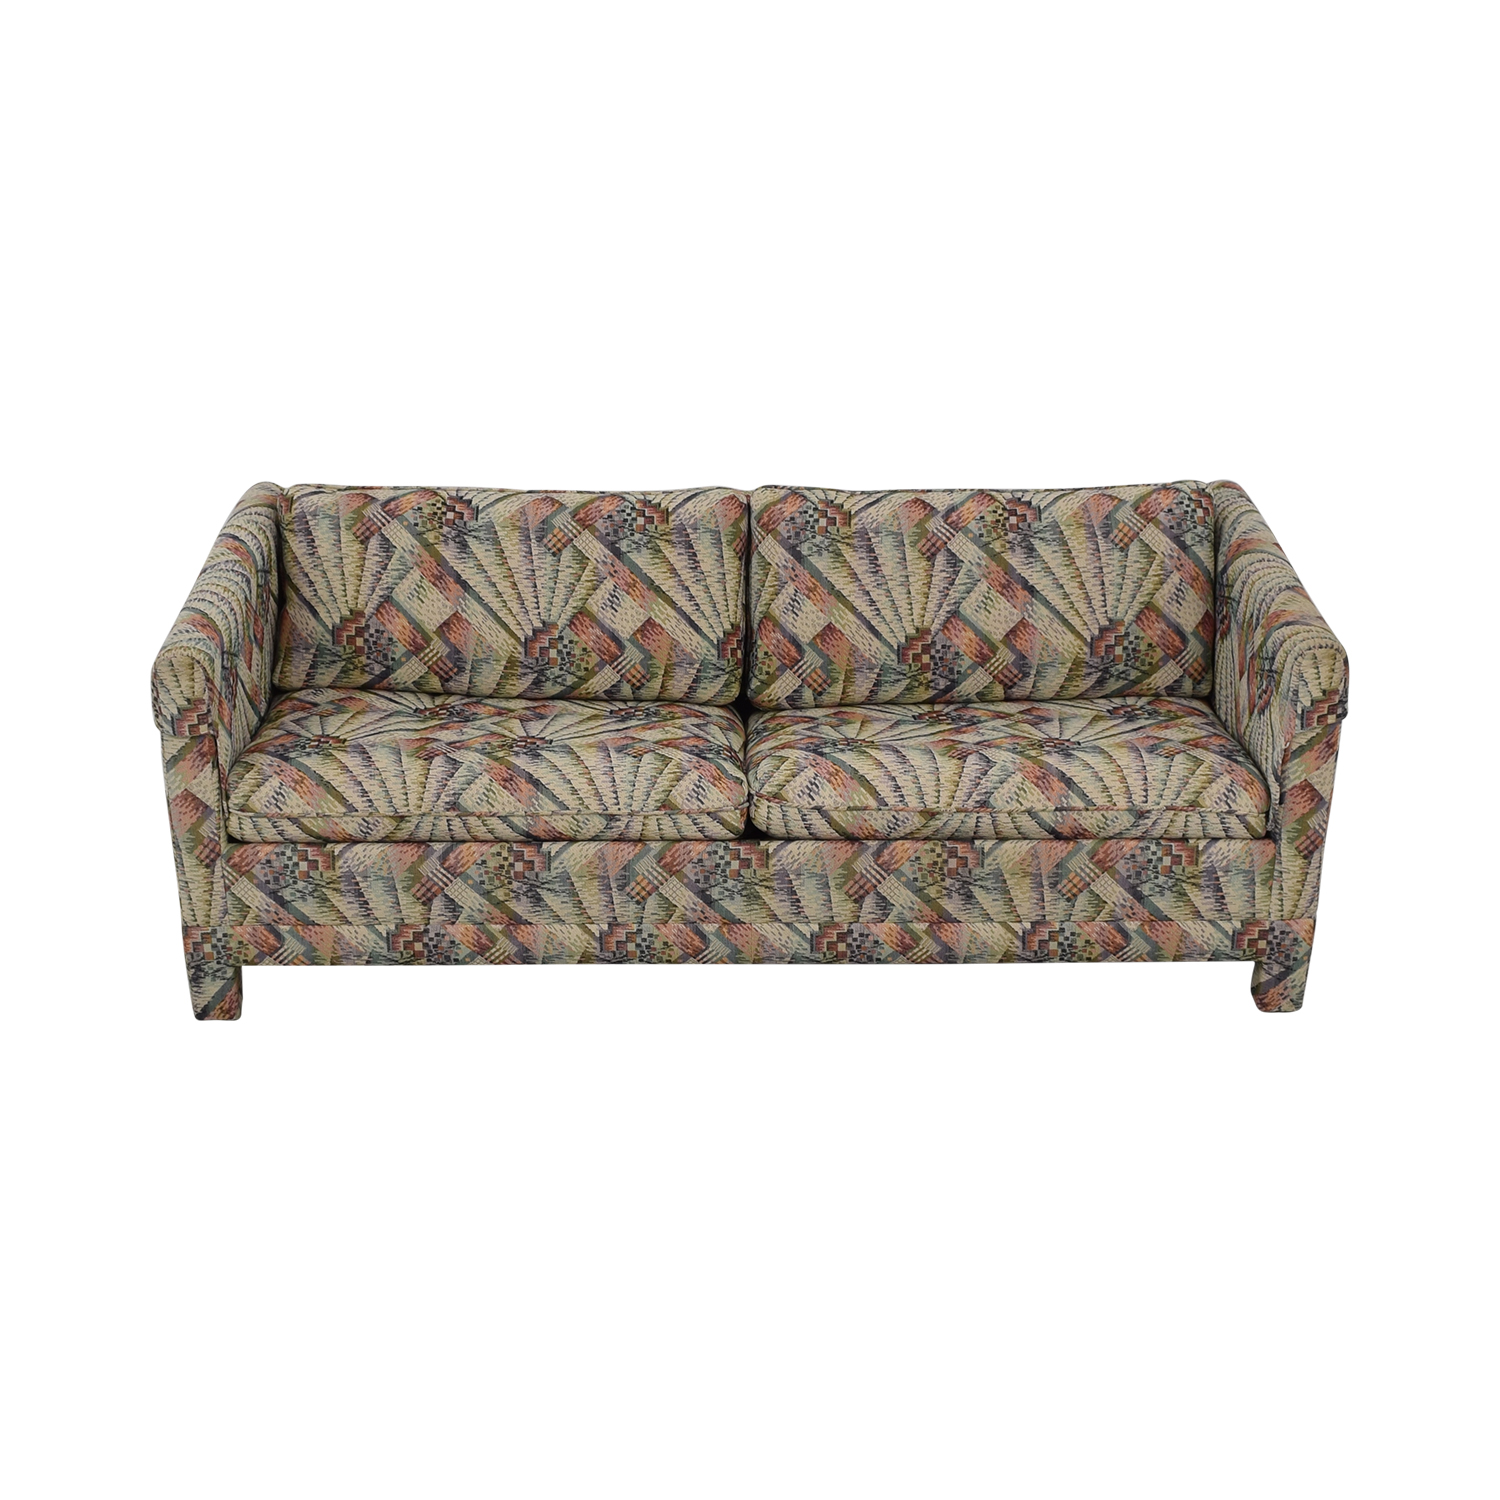 buy Mittman Patterned Queen Sleeper Sofa Lewis Mittman Sofas